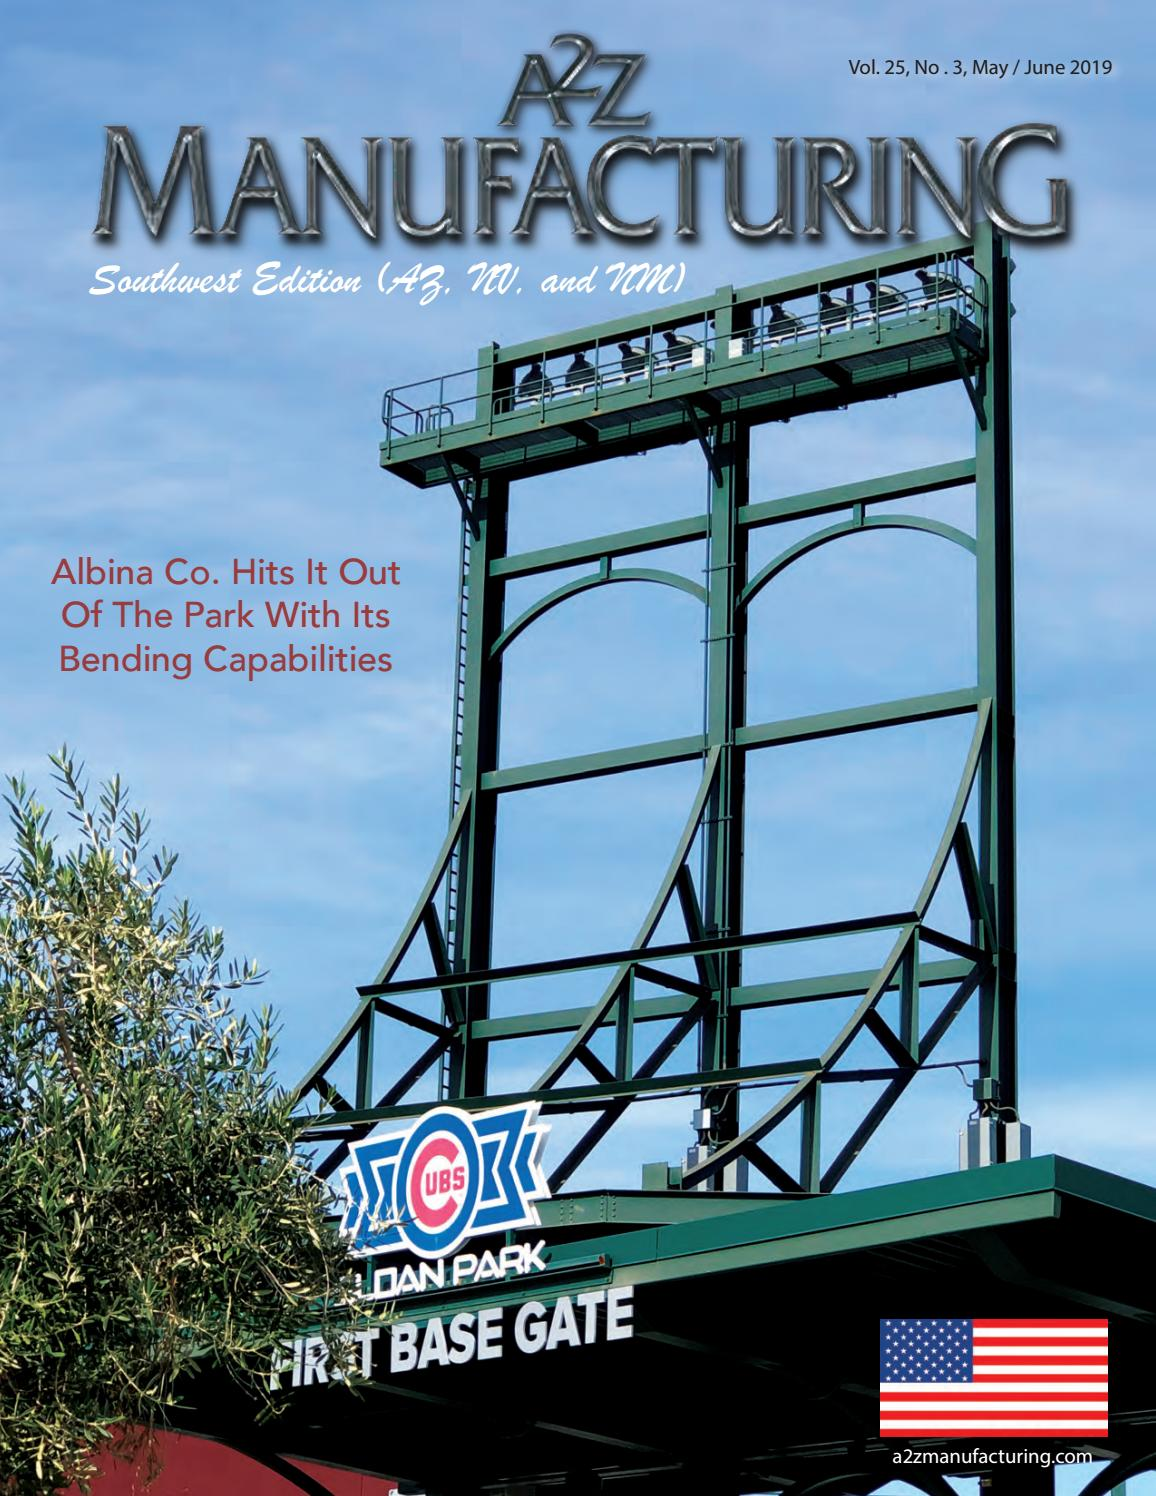 6fa4a572b3 A2Z Manufacturing SW Edition May 2019 by A2Z Manufacturing Magazines - issuu